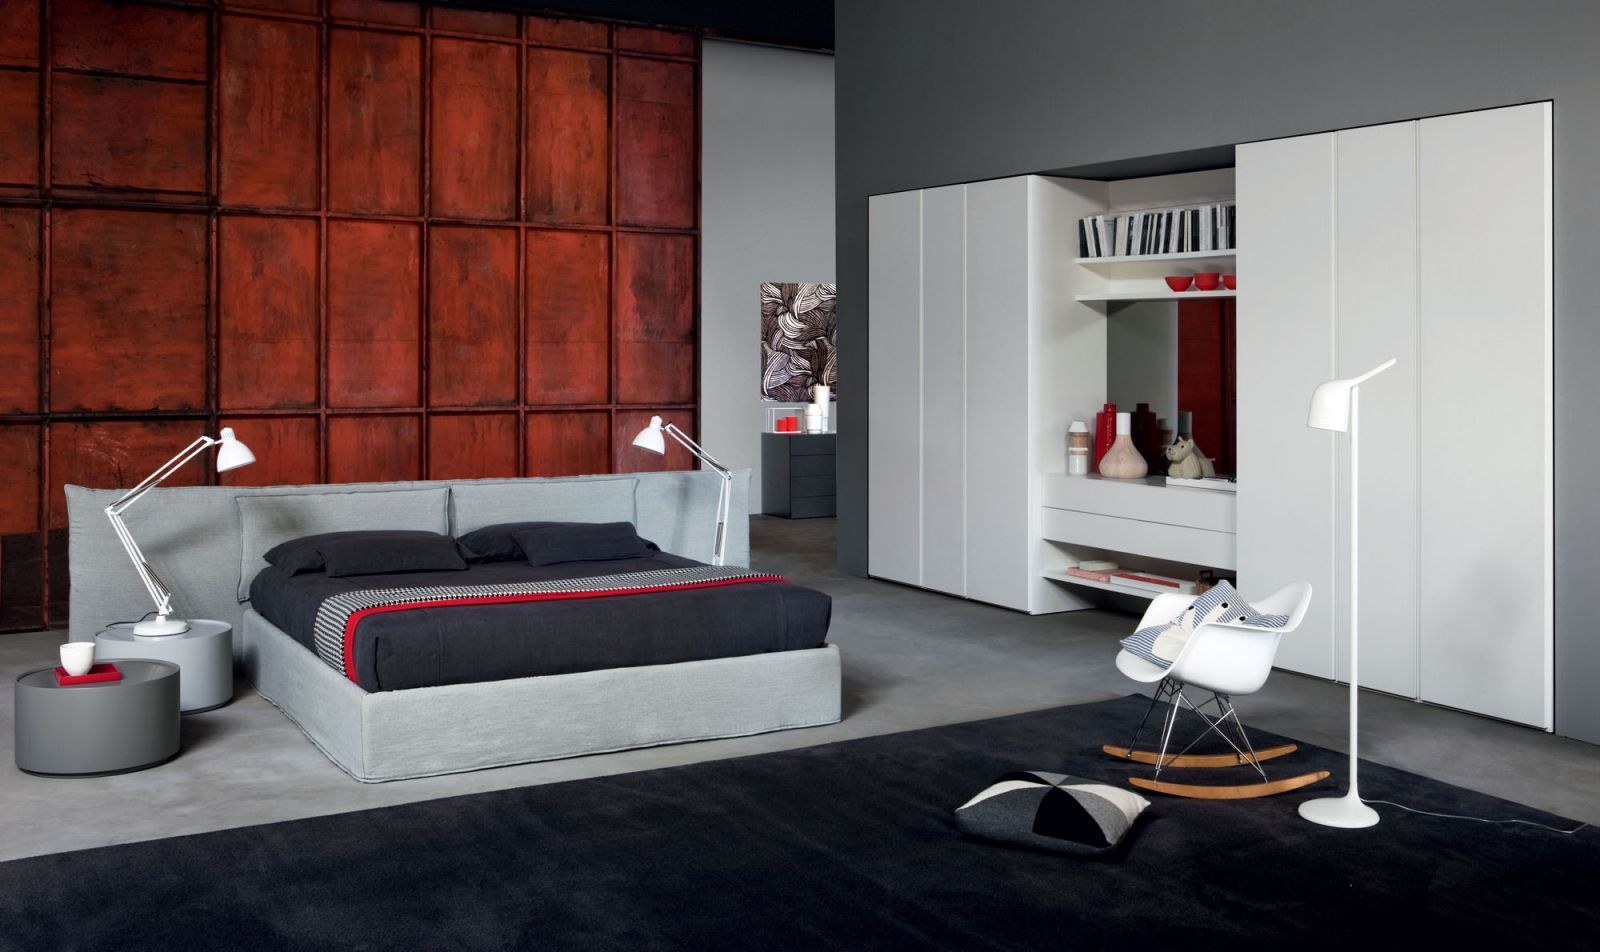 Black Carpet For Bedroom Novamobili Suite Bed Tempo Notte Design Made In Italy Book